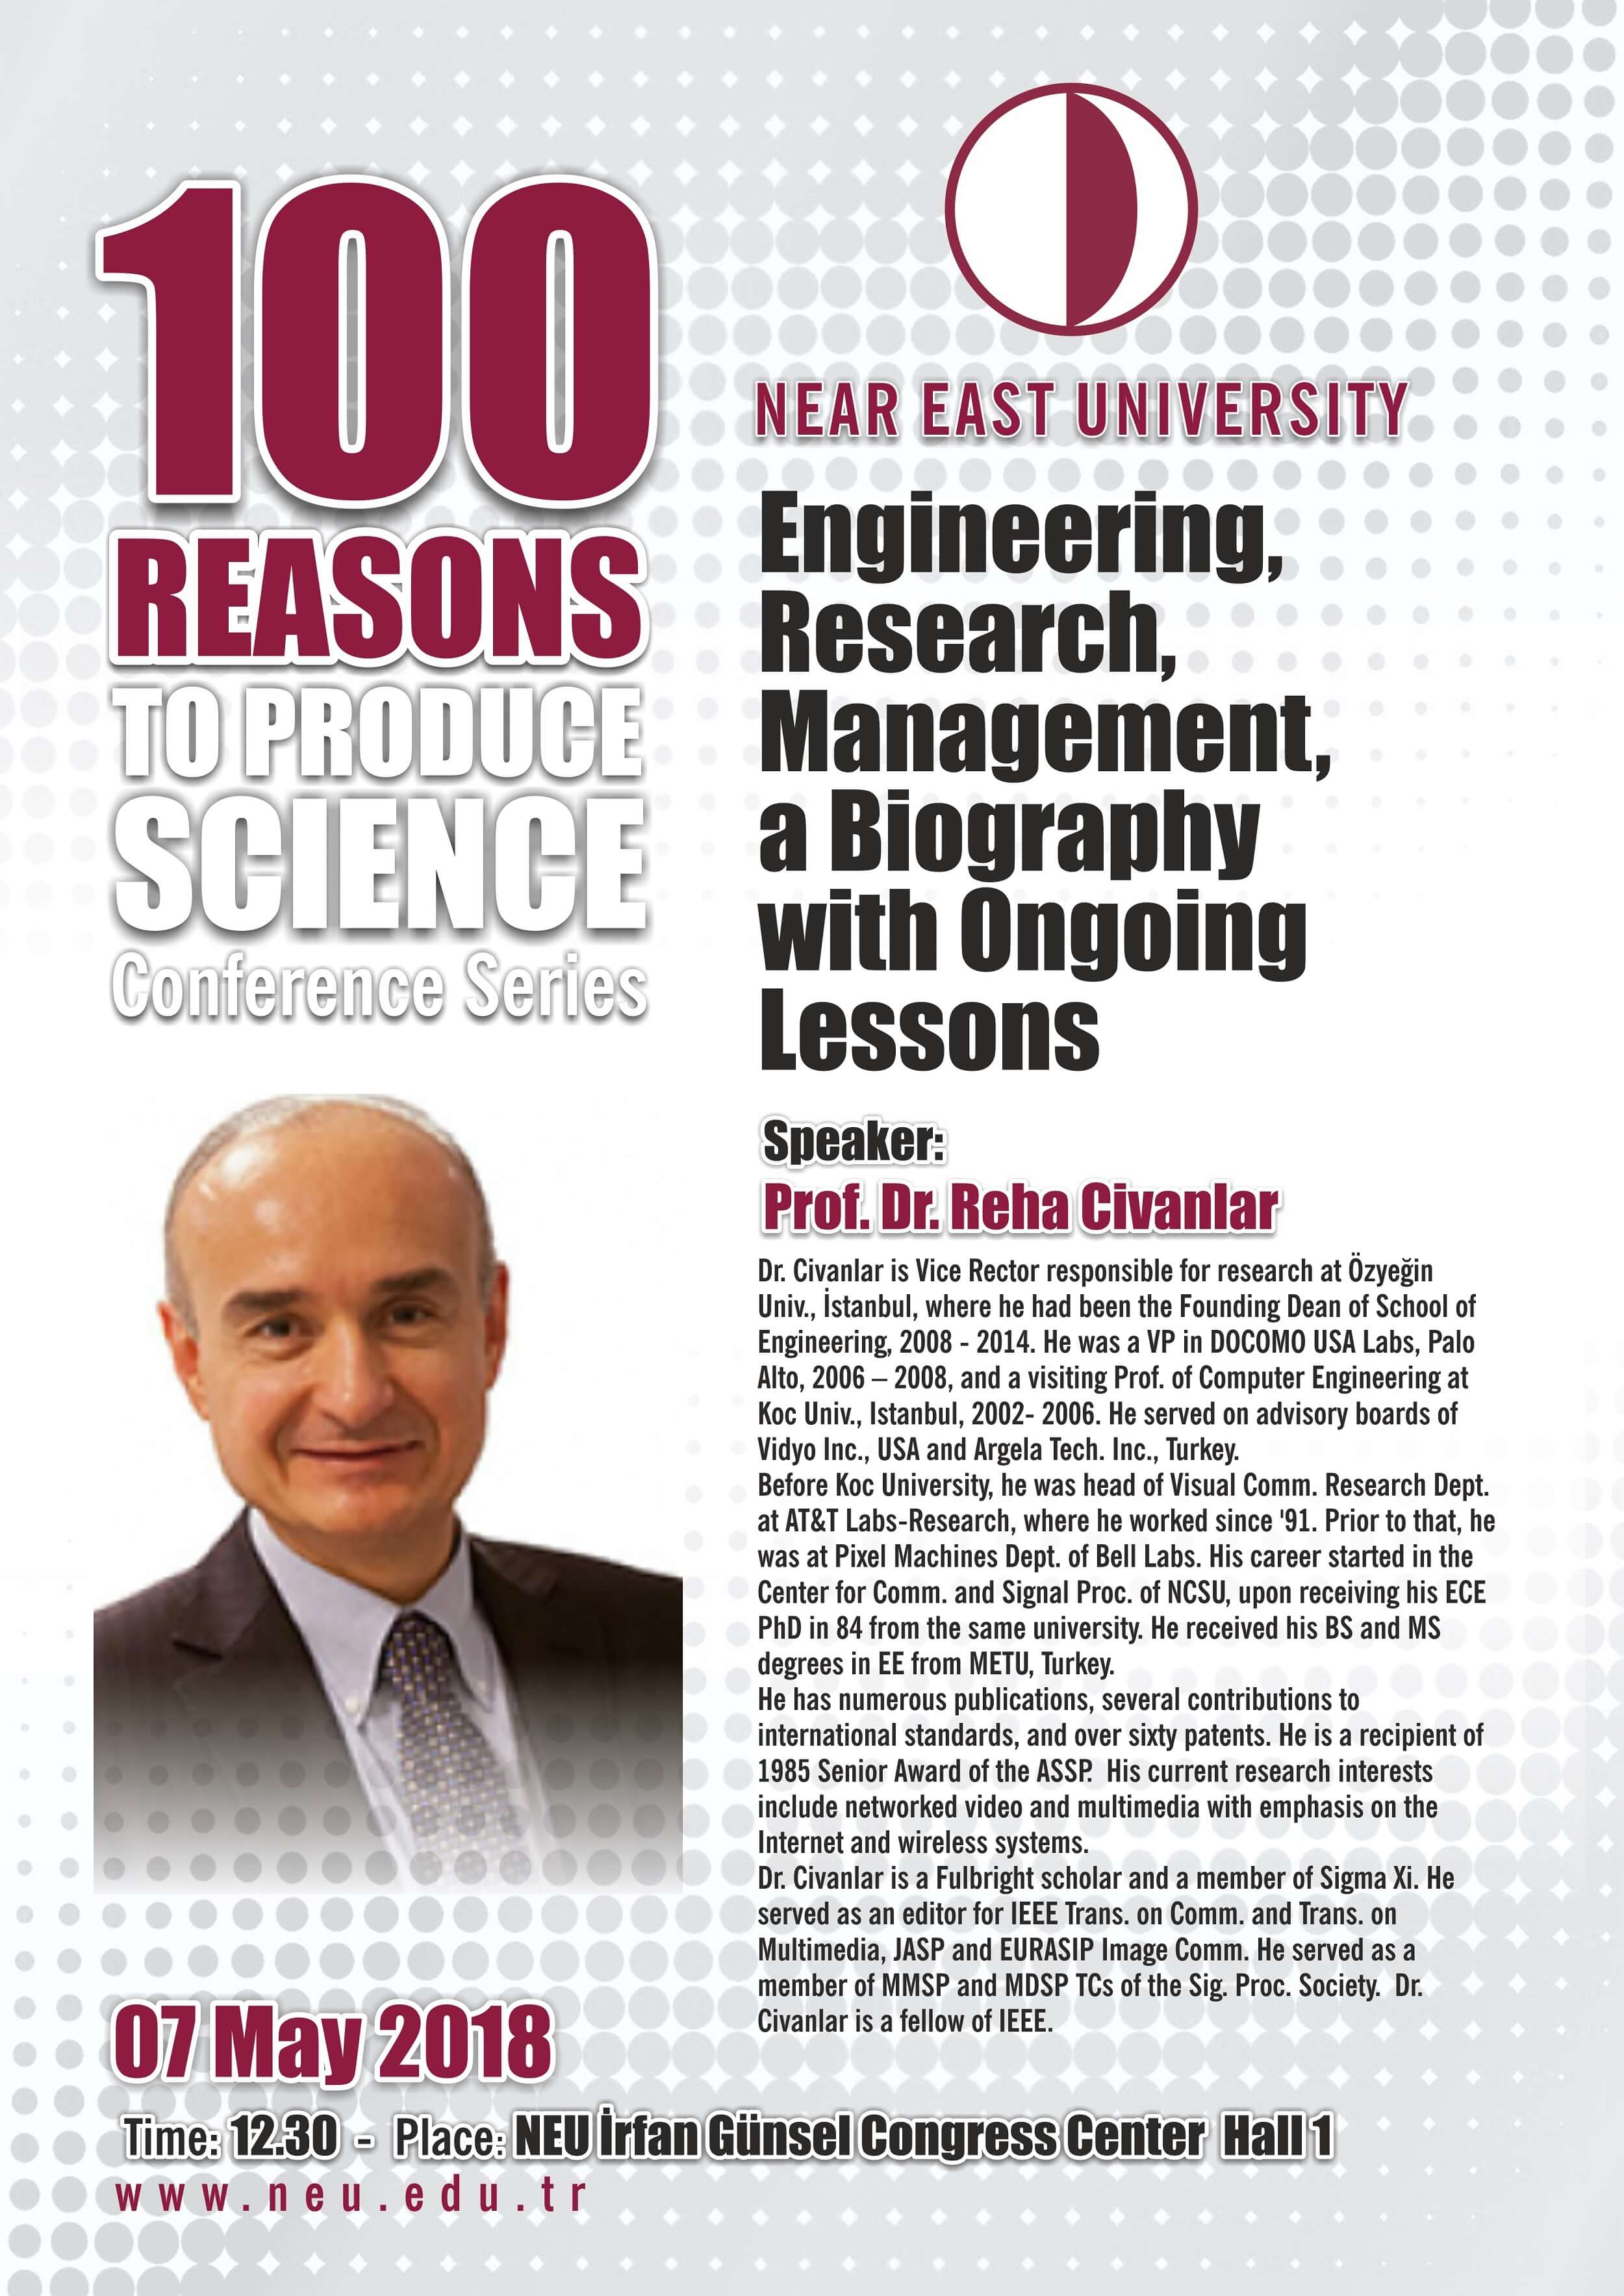 Conference: Engineering, Research, Management, a Biography with Ongoing Lessons